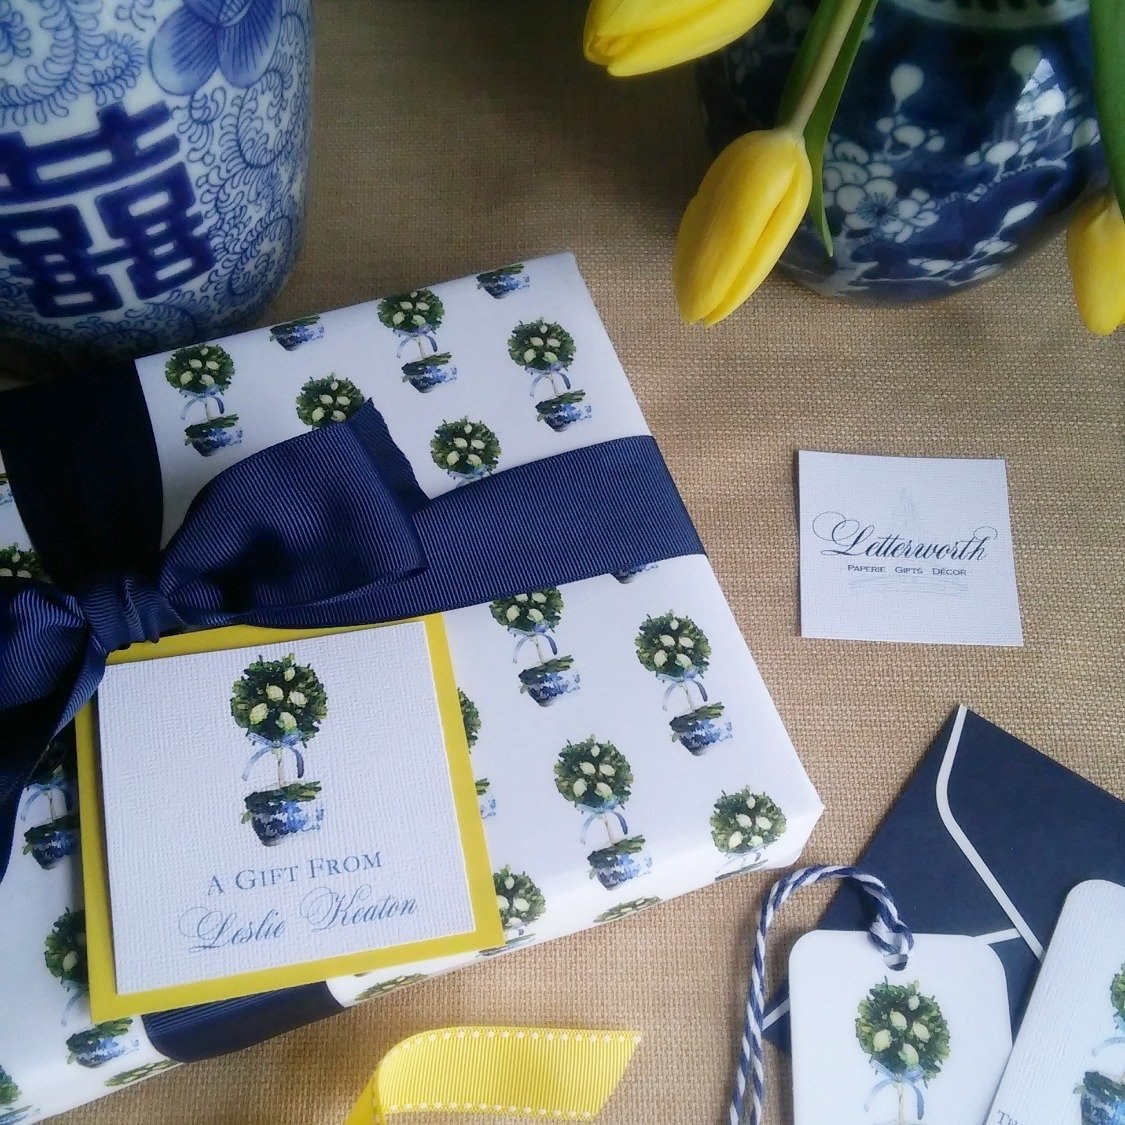 Lemon Topiary Blue and White Chinoiserie Gift Wrapping Paper by Letterworth